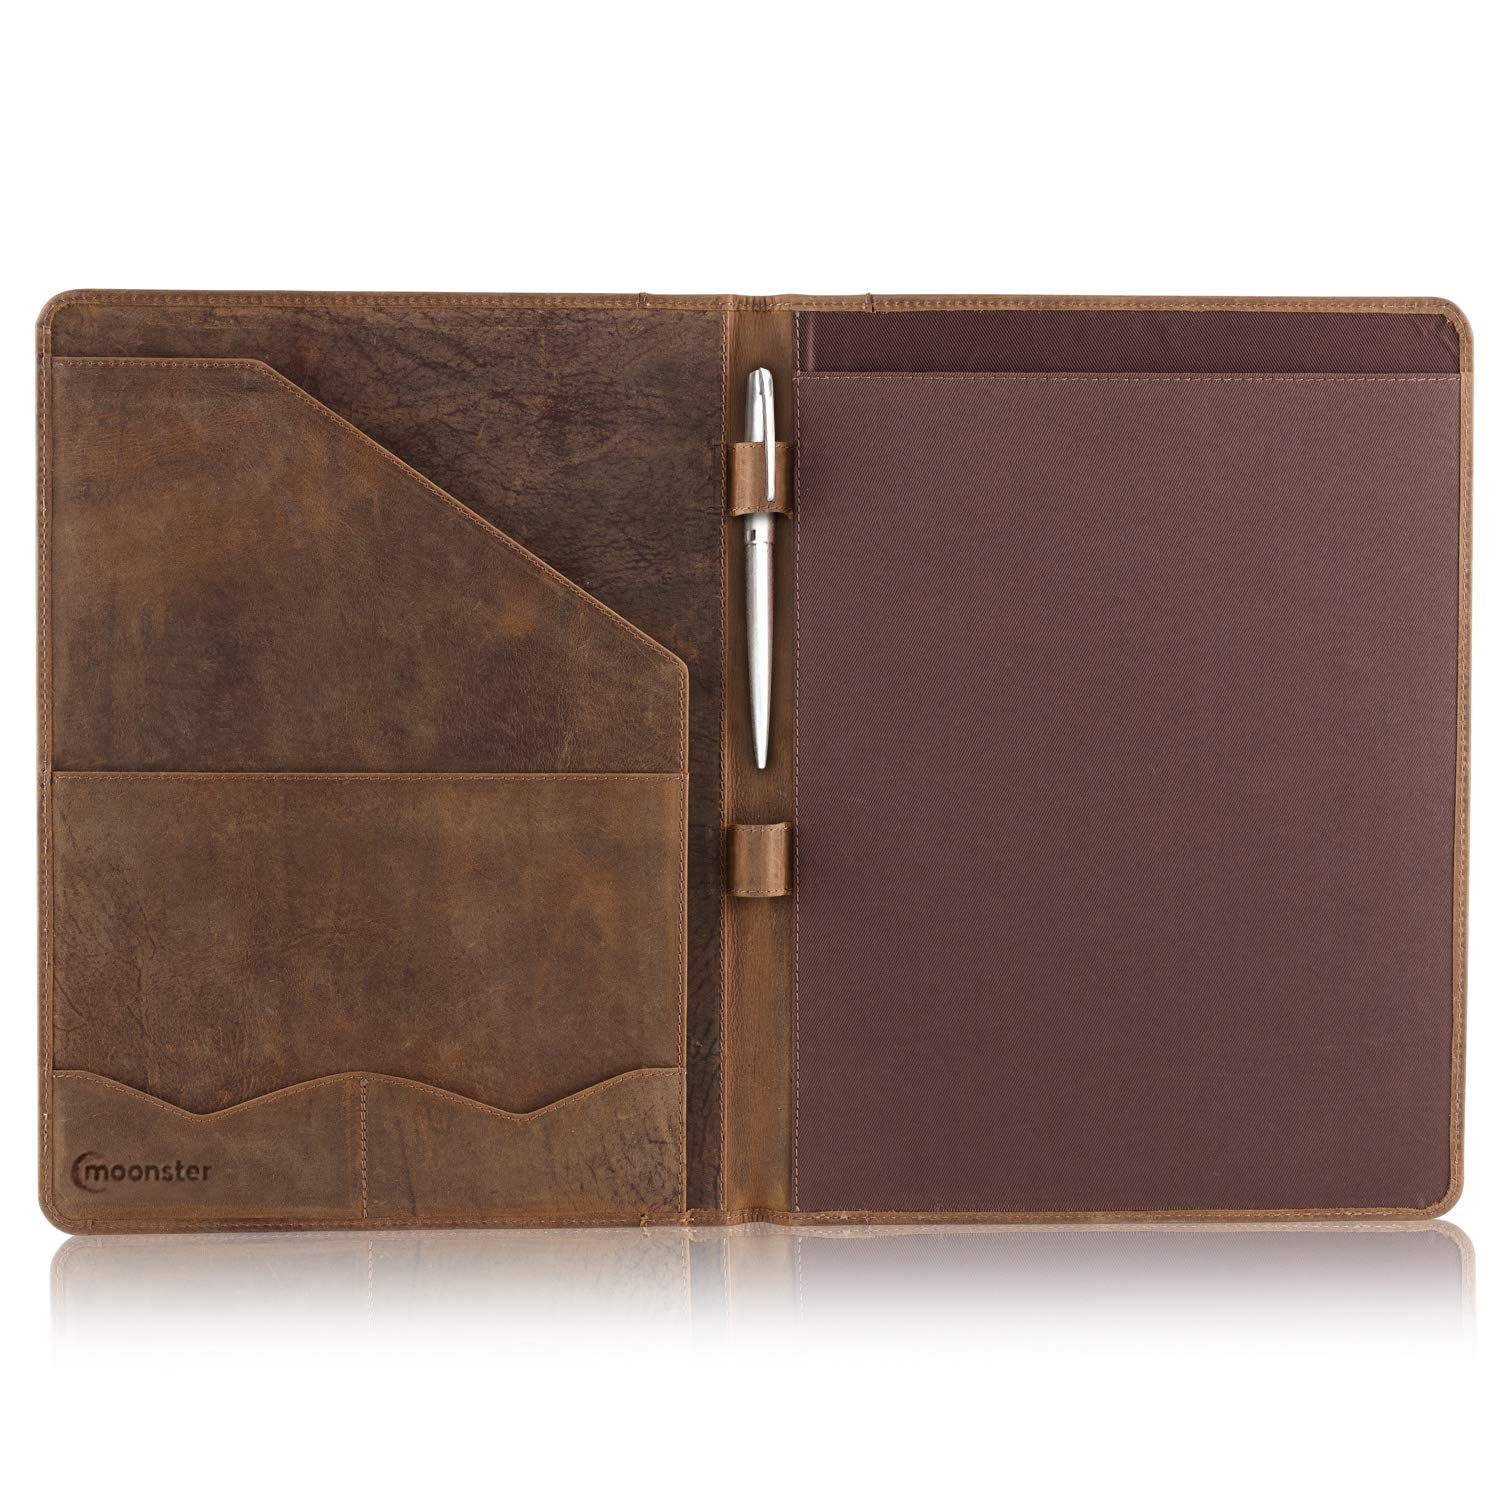 promo code 6746a 821f5 Leather Portfolio Professional Organizer Padfolio – Resume Folder with  Luxury Pen, Stylish Document Folio for Letter Size Writing Pad with  Business ...